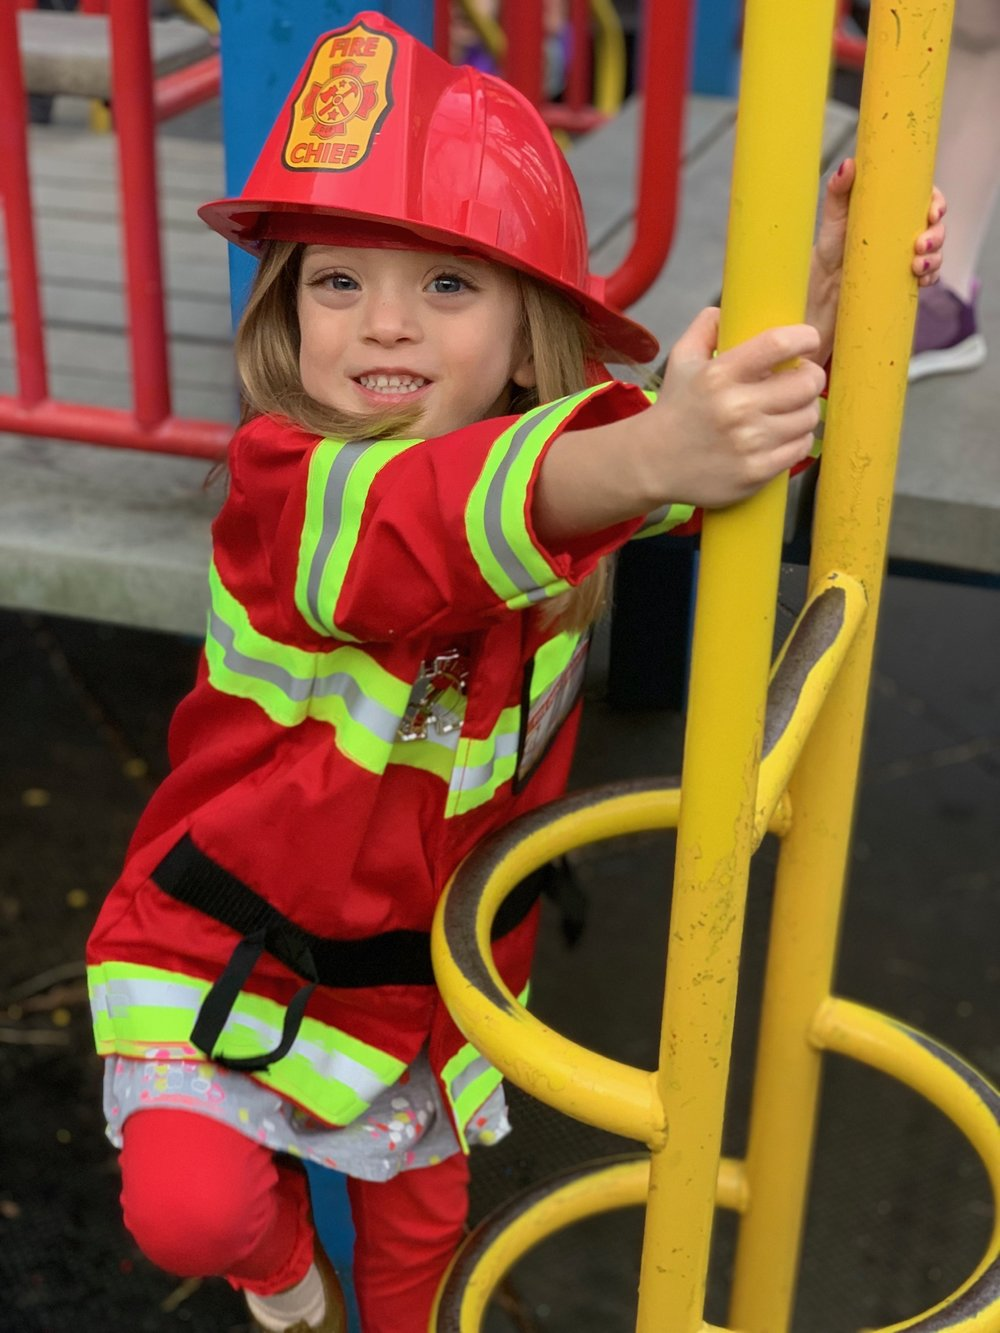 Lucie had a day off from school for Chinese Lunar New Year, and the weather was gorgeous, so of course that meant pretending to be a Fire Chief at the playground.